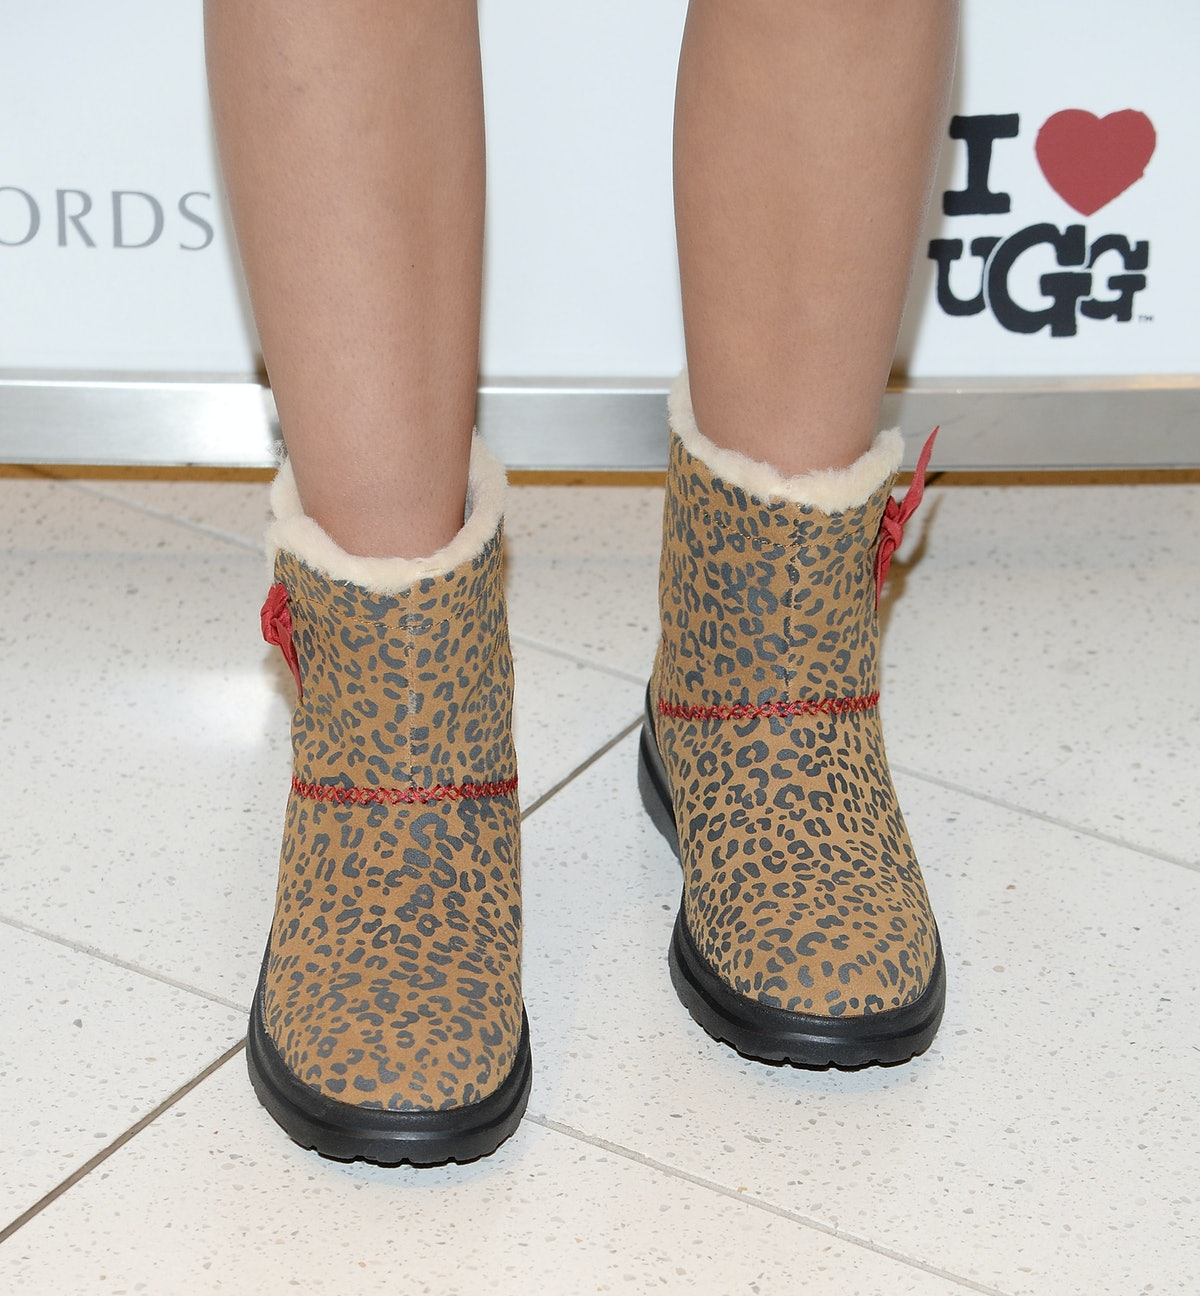 According to TikTokers, Uggs are officially cheugy.